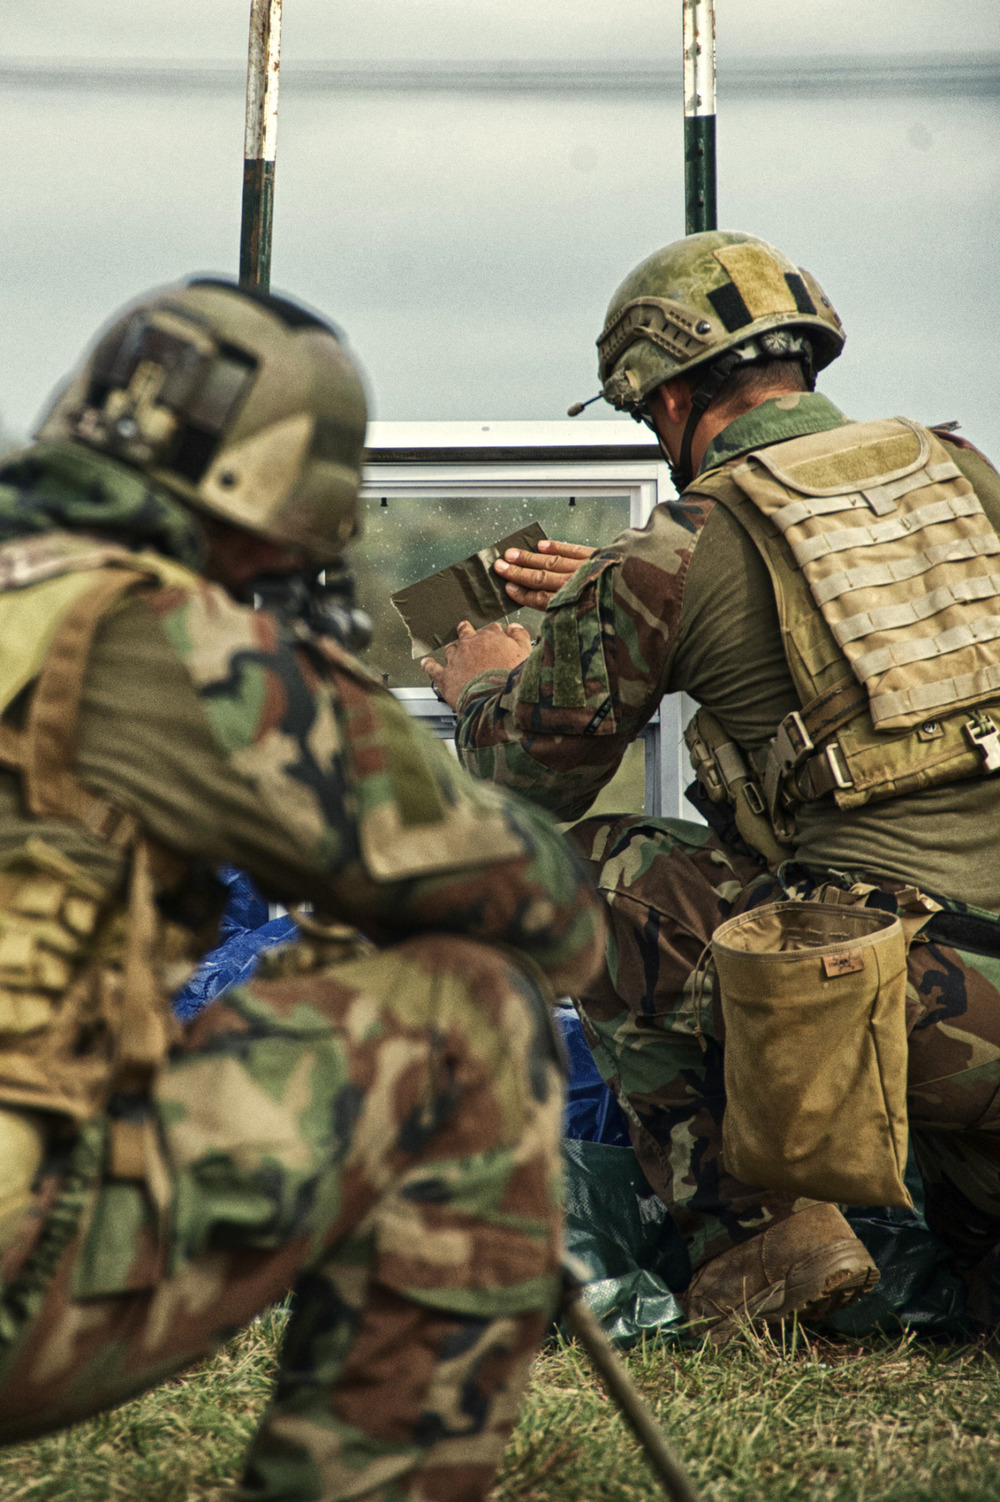 Members of MARSOC attend the Advanced Sniper Training Course near Jacksboro, TX on October 30, 2013. Photo by Catherine Deran